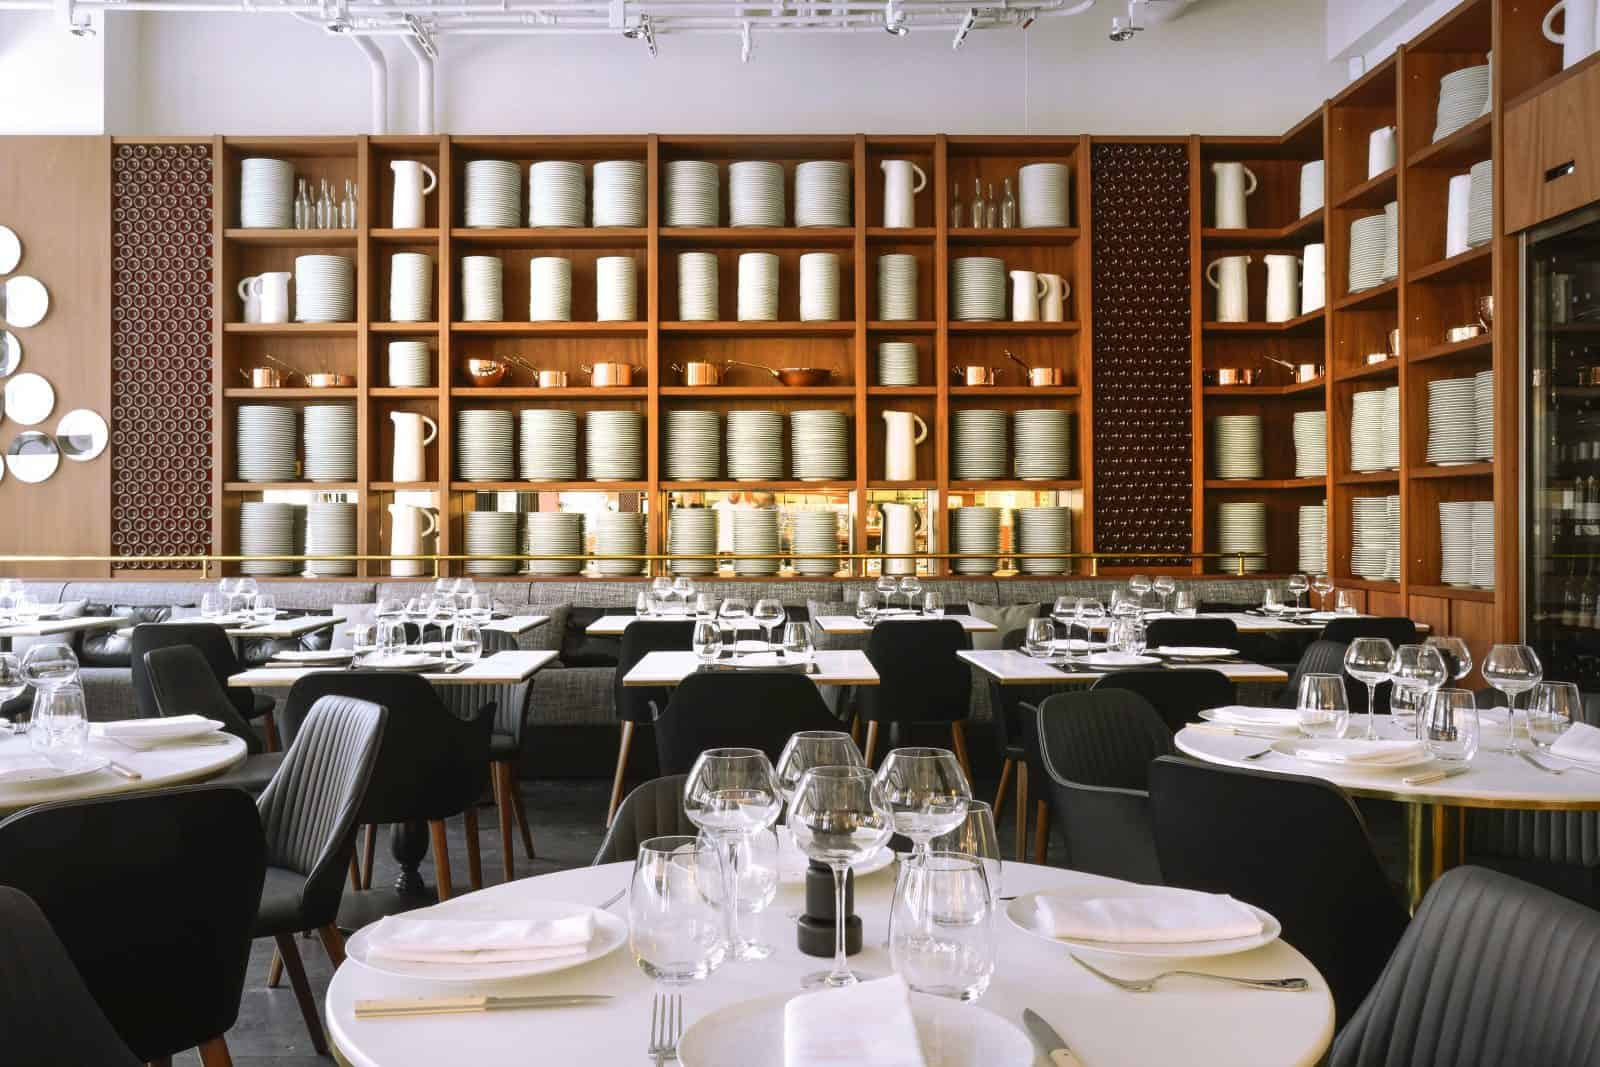 lazare o novo restaurante do chef eric frechon em paris eu como sim. Black Bedroom Furniture Sets. Home Design Ideas